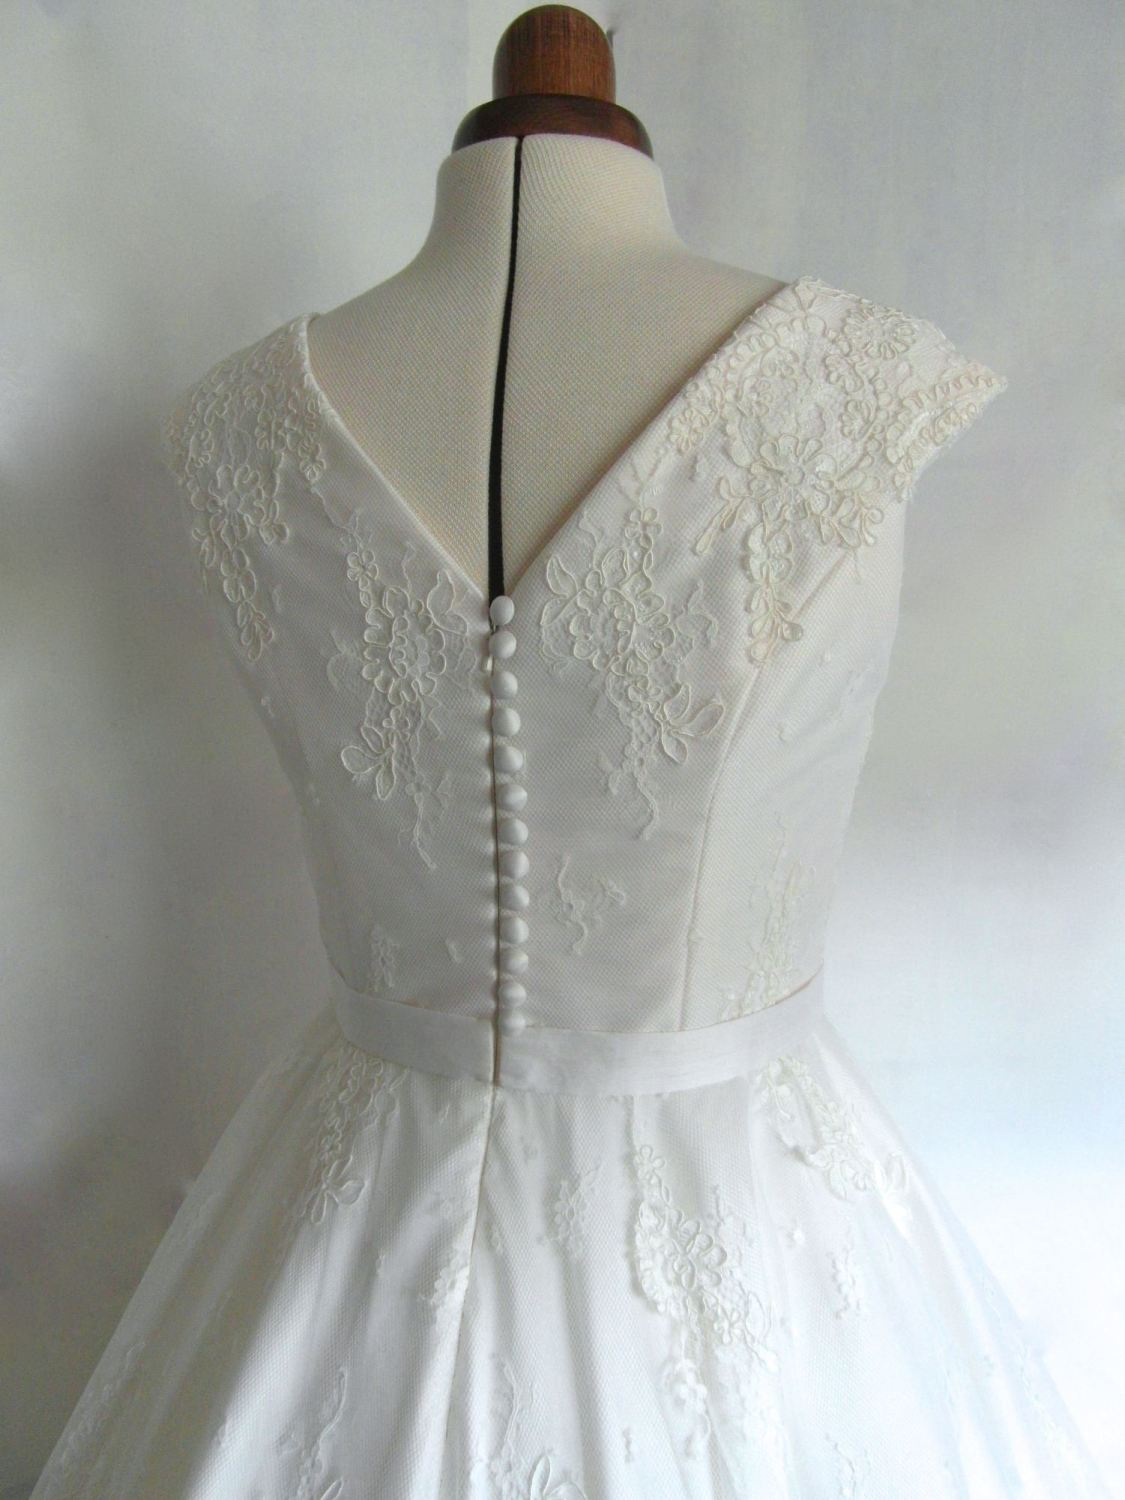 Lola-Rose lace 1950s tea length wedding dress buttons